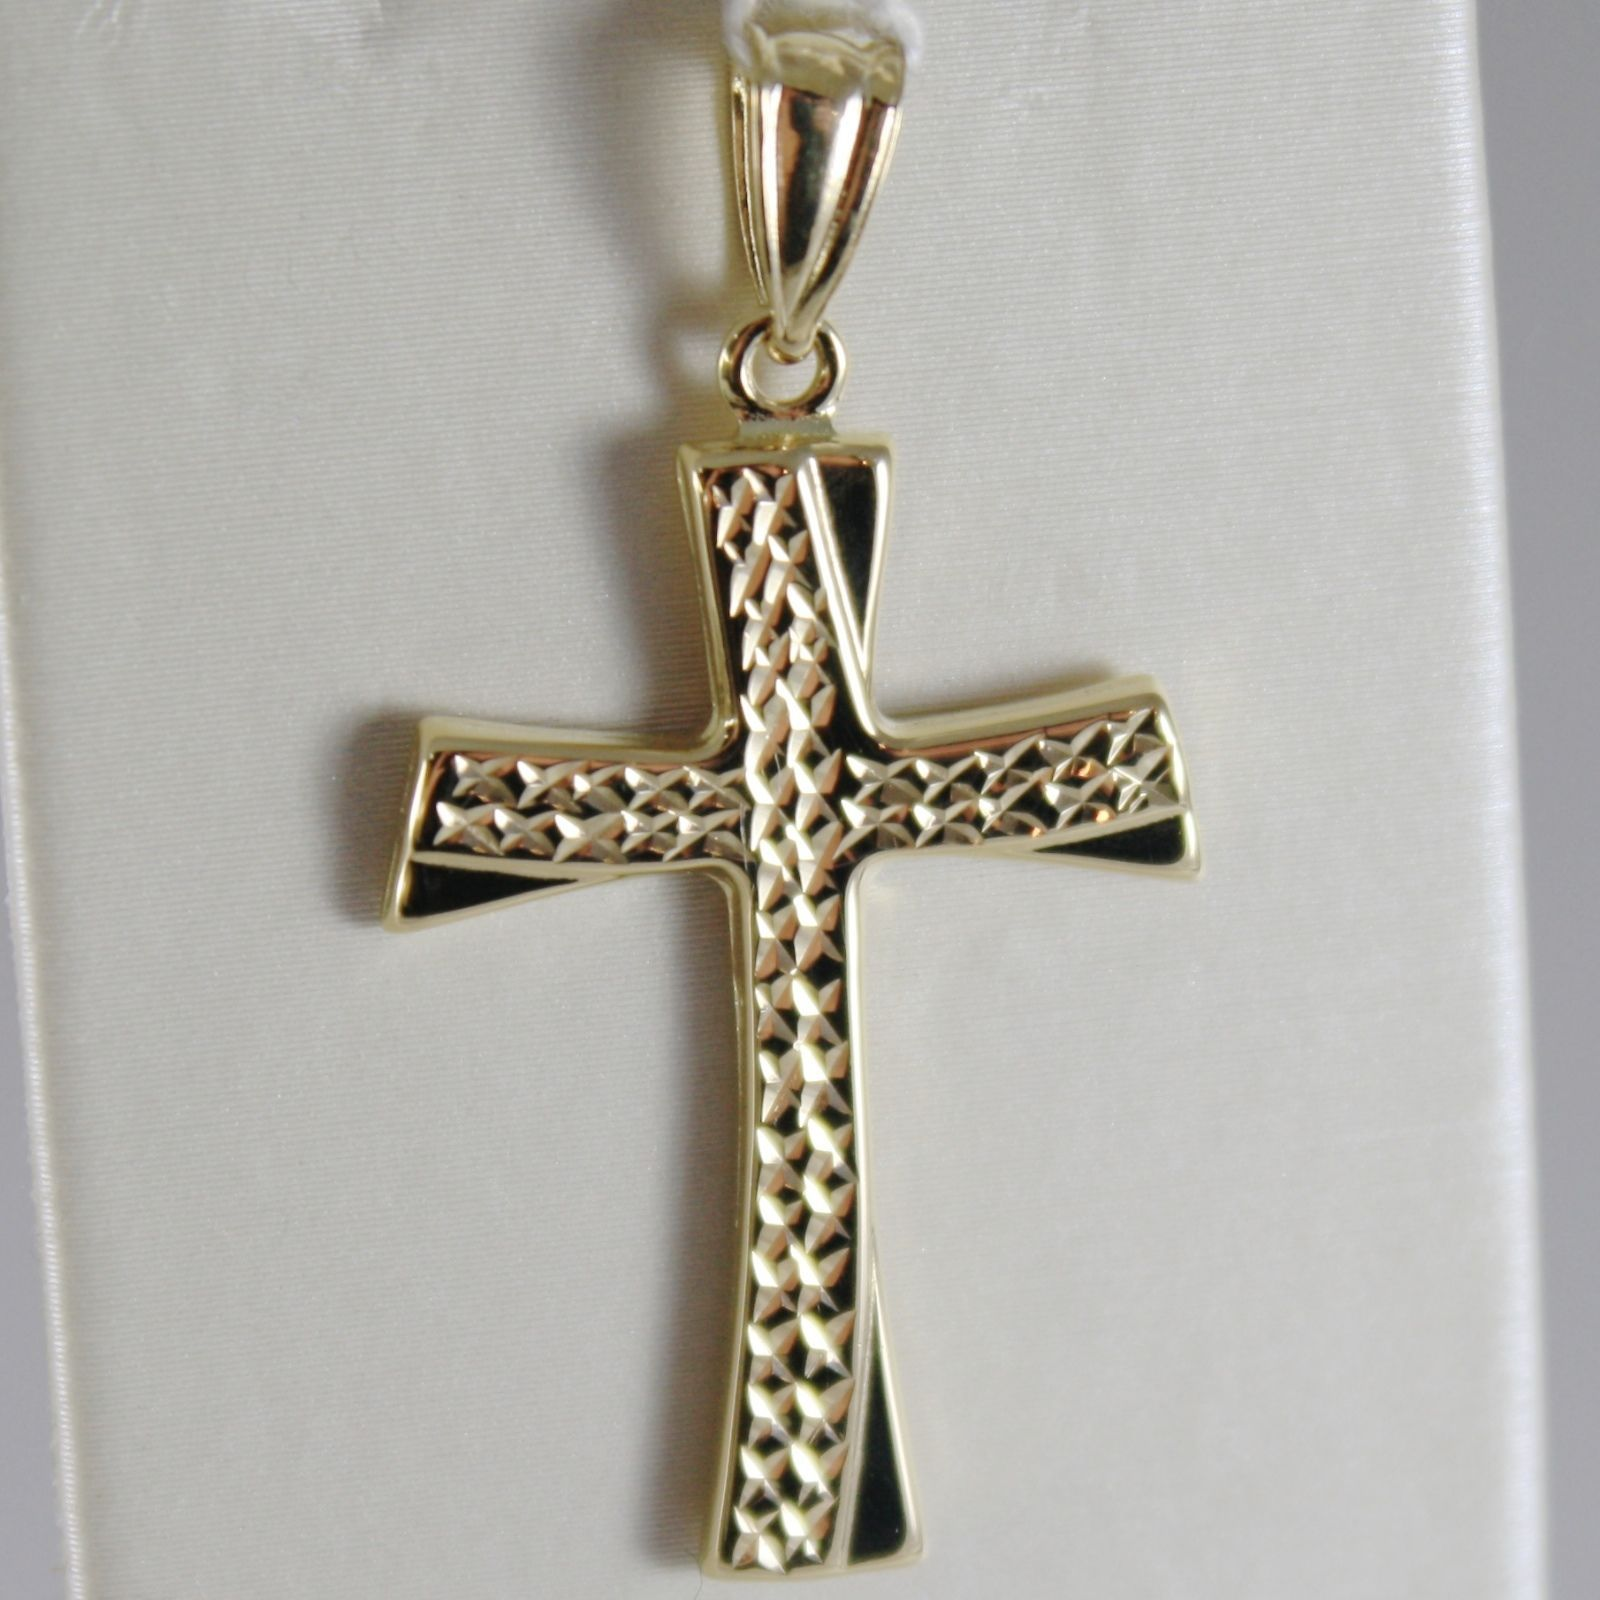 18K YELLOW GOLD CROSS, FINELY WORKED, BRIGHT, LUMINOUS 1.38 INCHES MADE IN ITALY